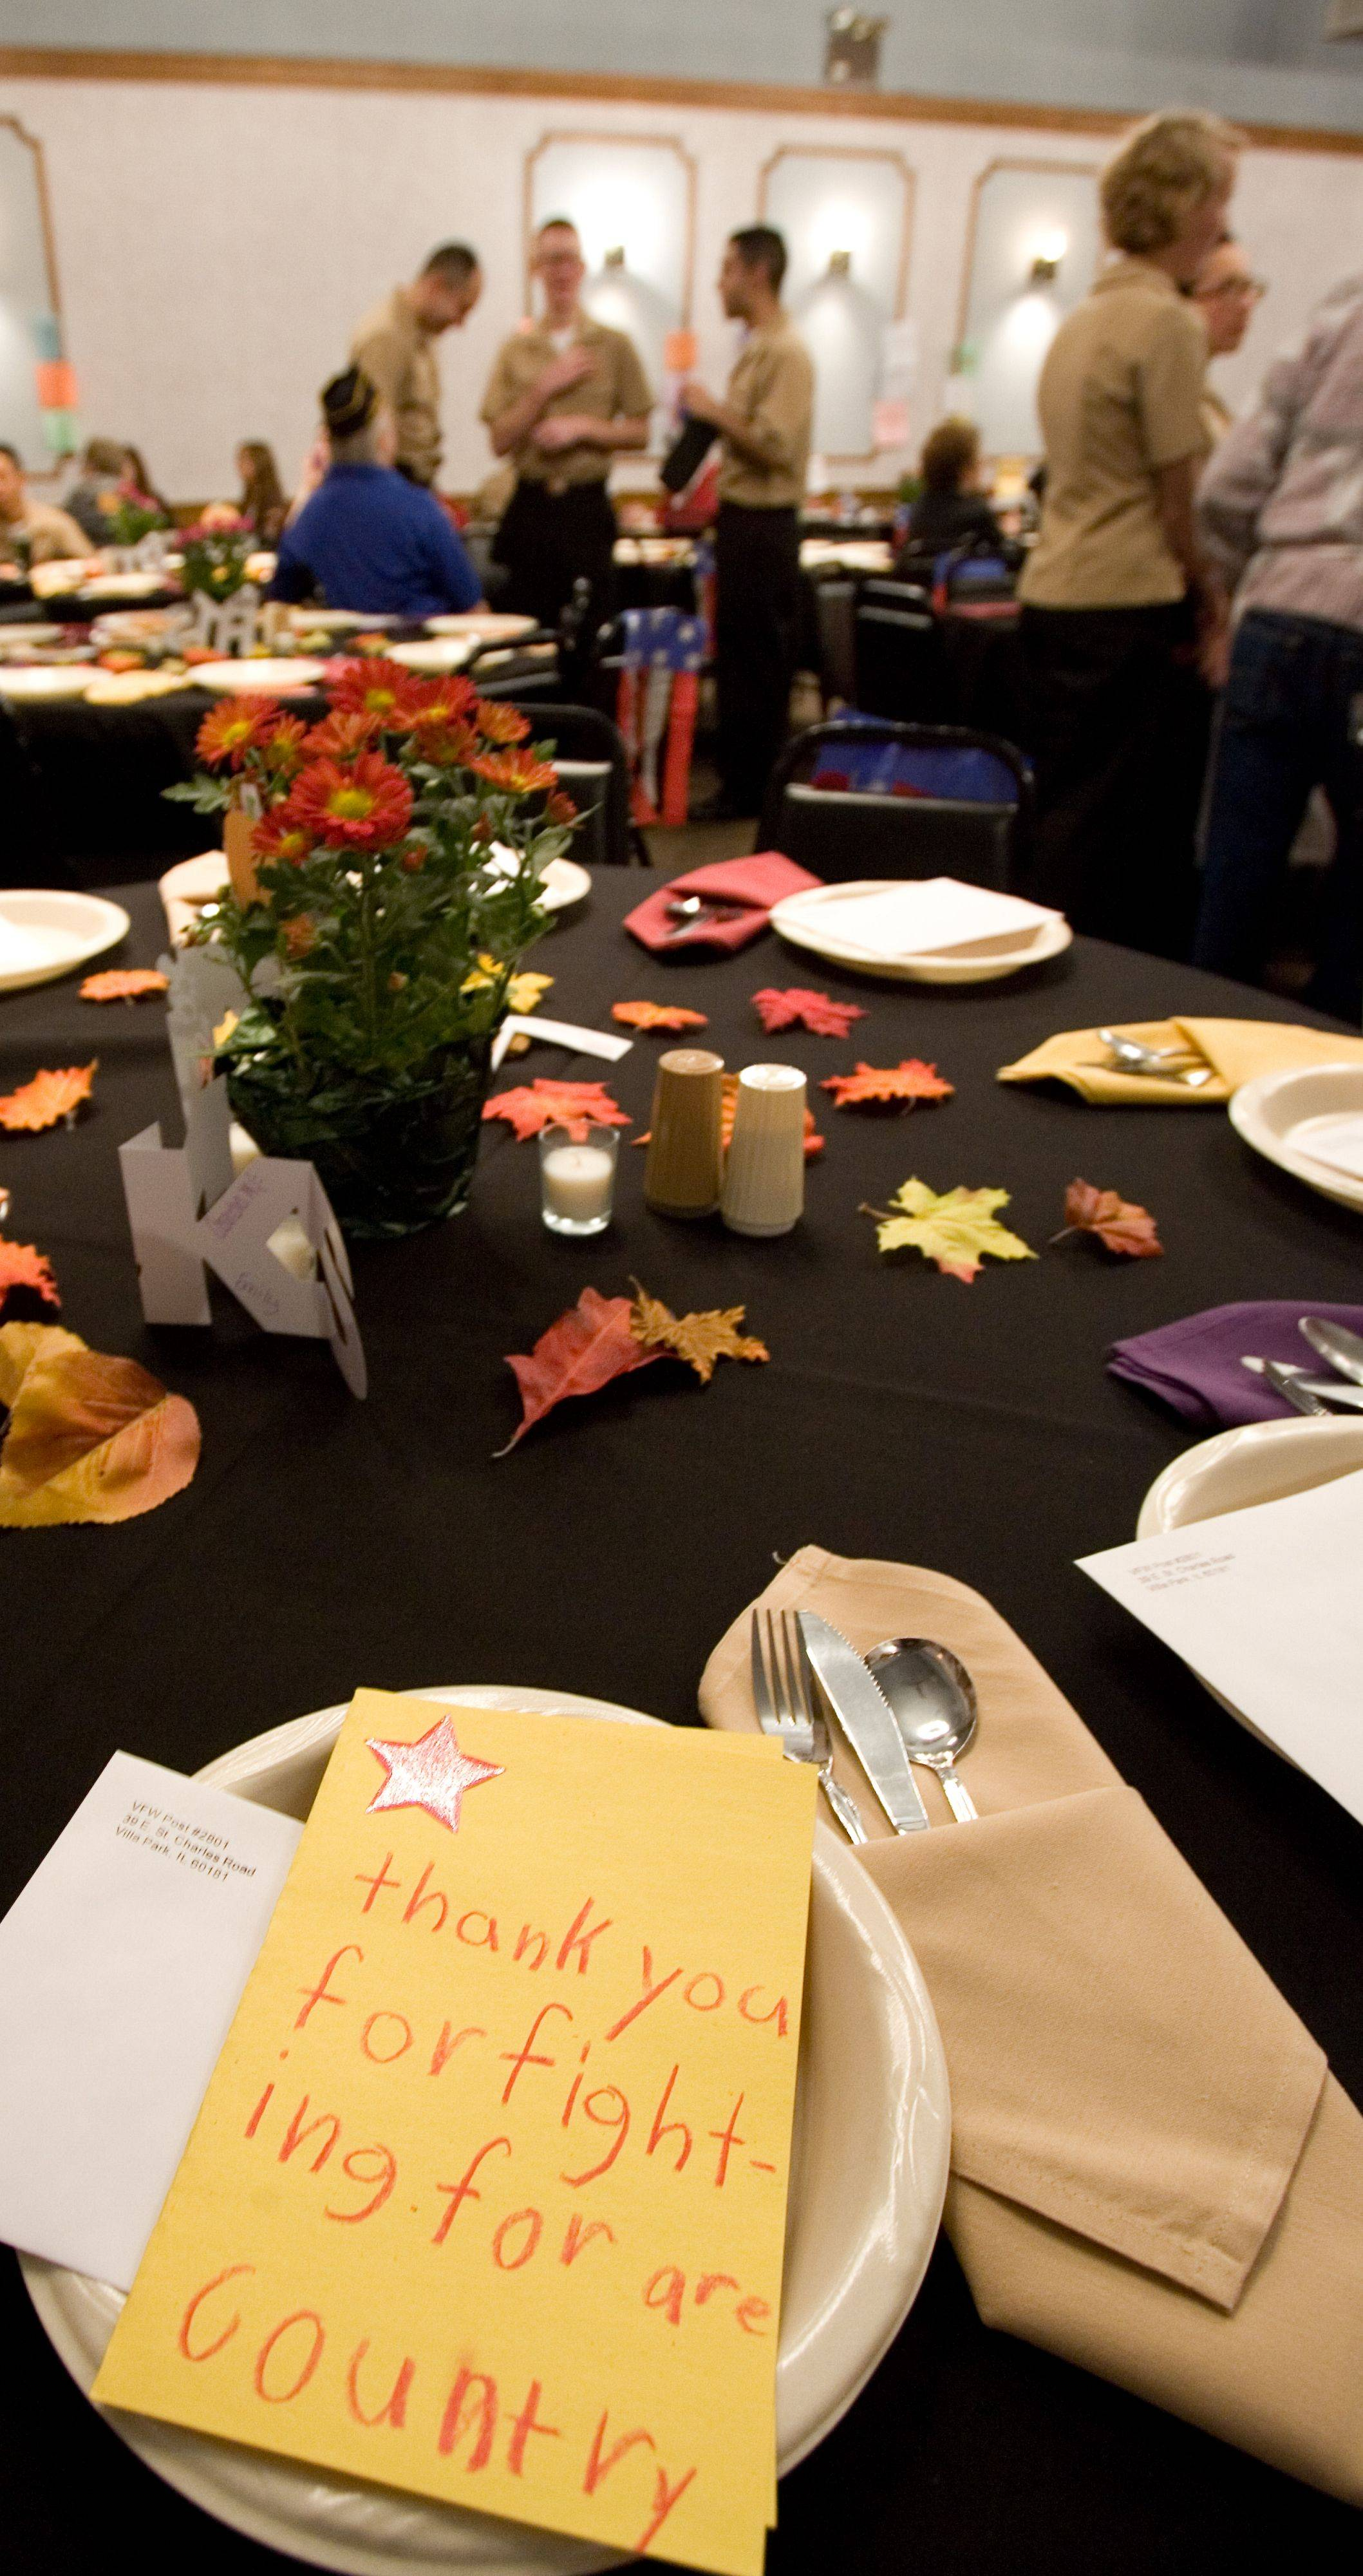 The table is set for Great Lakes Navy recruits to enjoy Thanksgiving at Villa Park VFW Post 2801.